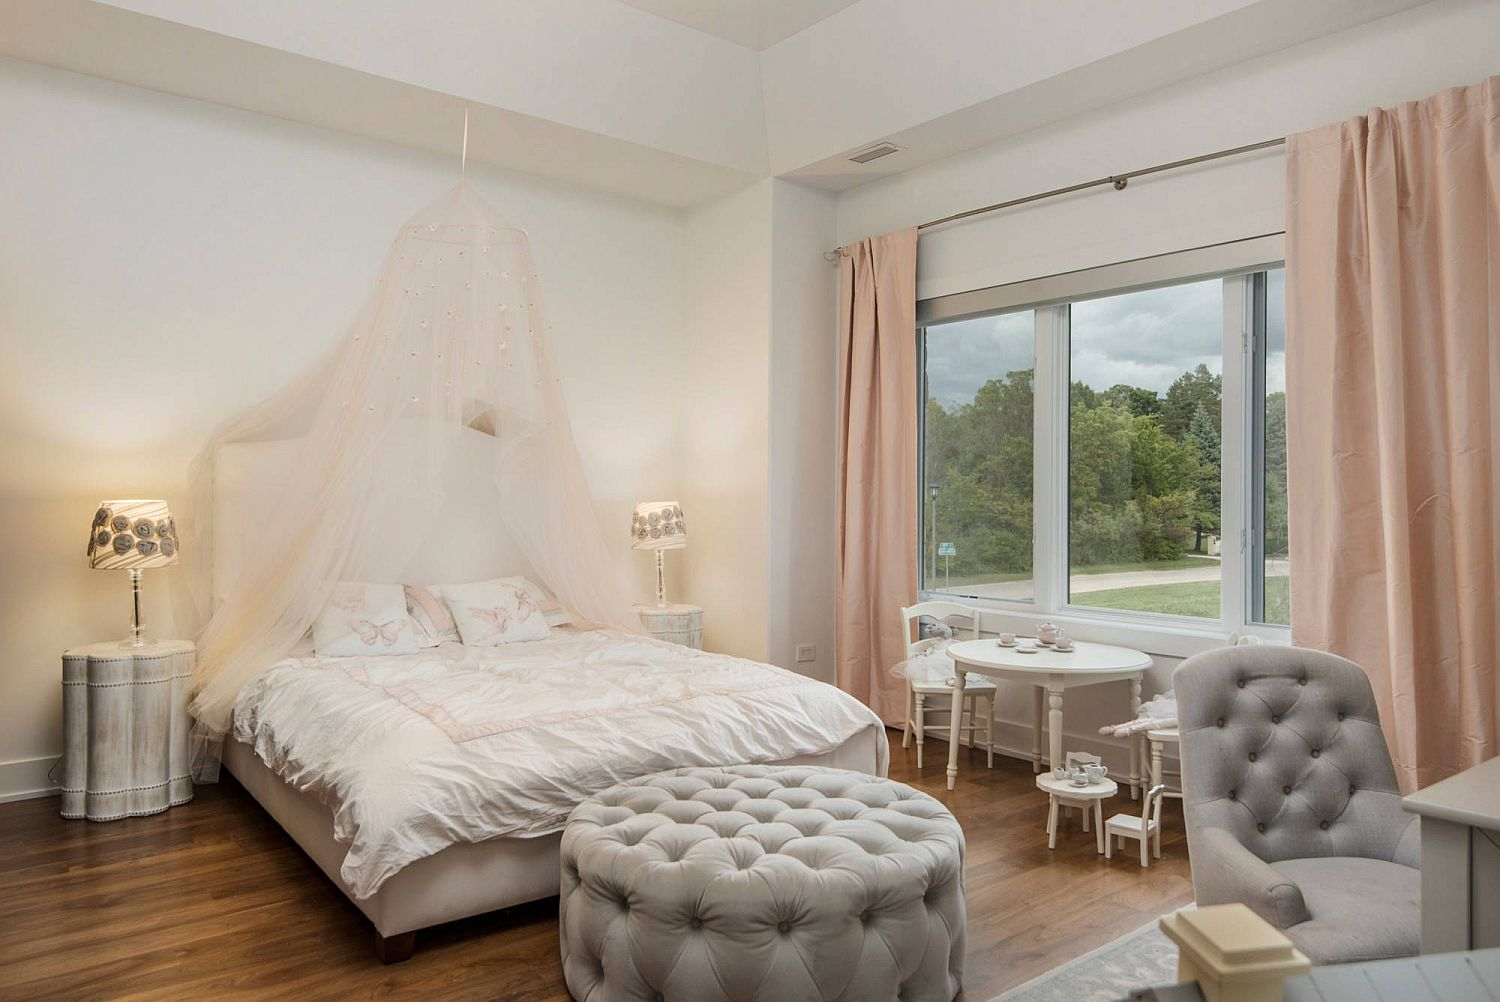 Bringing-pink-and-coral-into-the-cheerful-shabby-chic-kids-bedroom